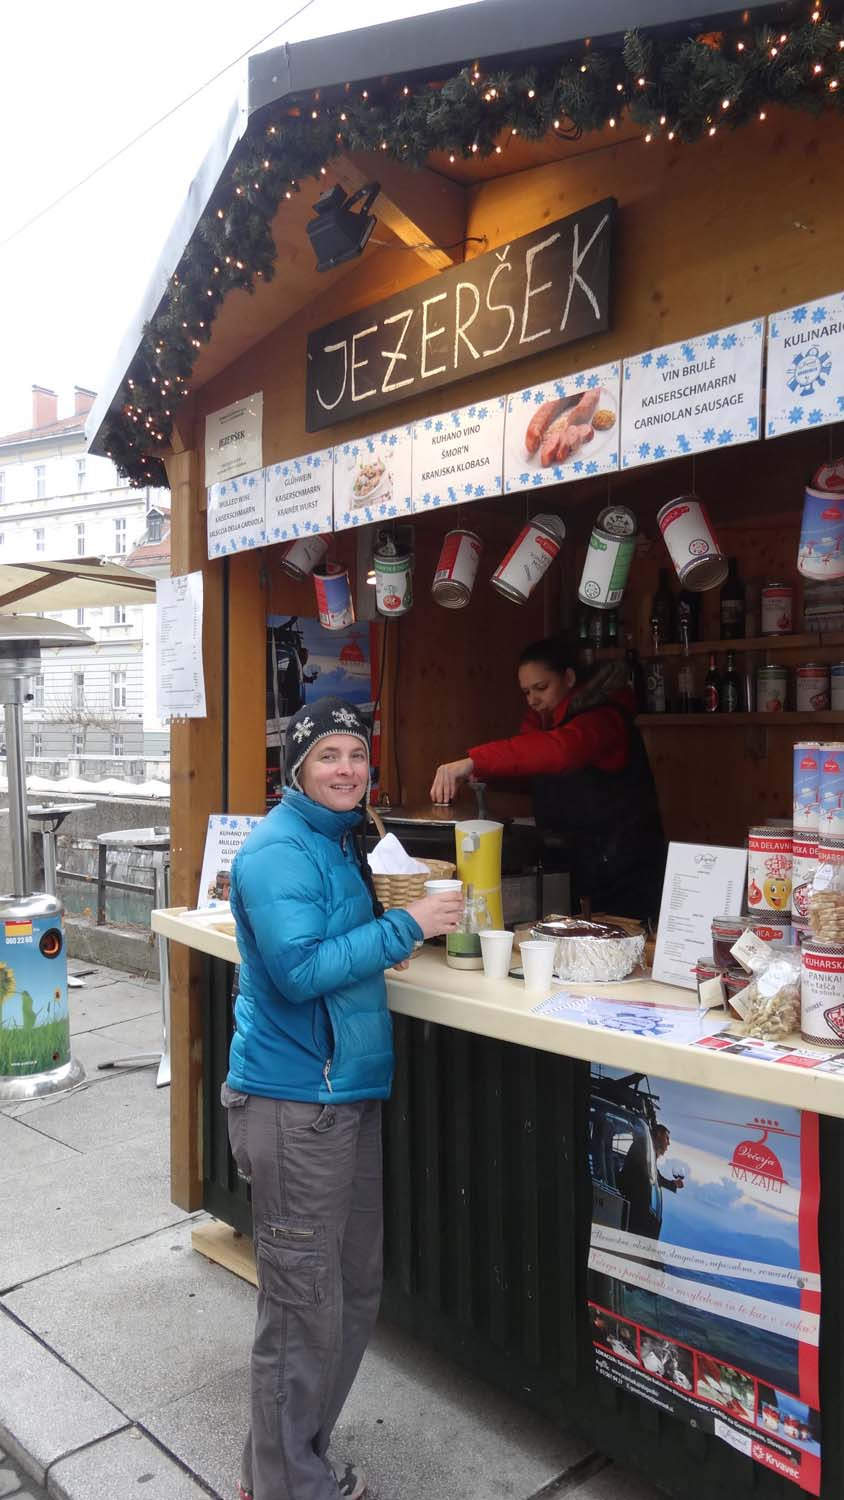 one of many gluhwein stalls in Ljubljana